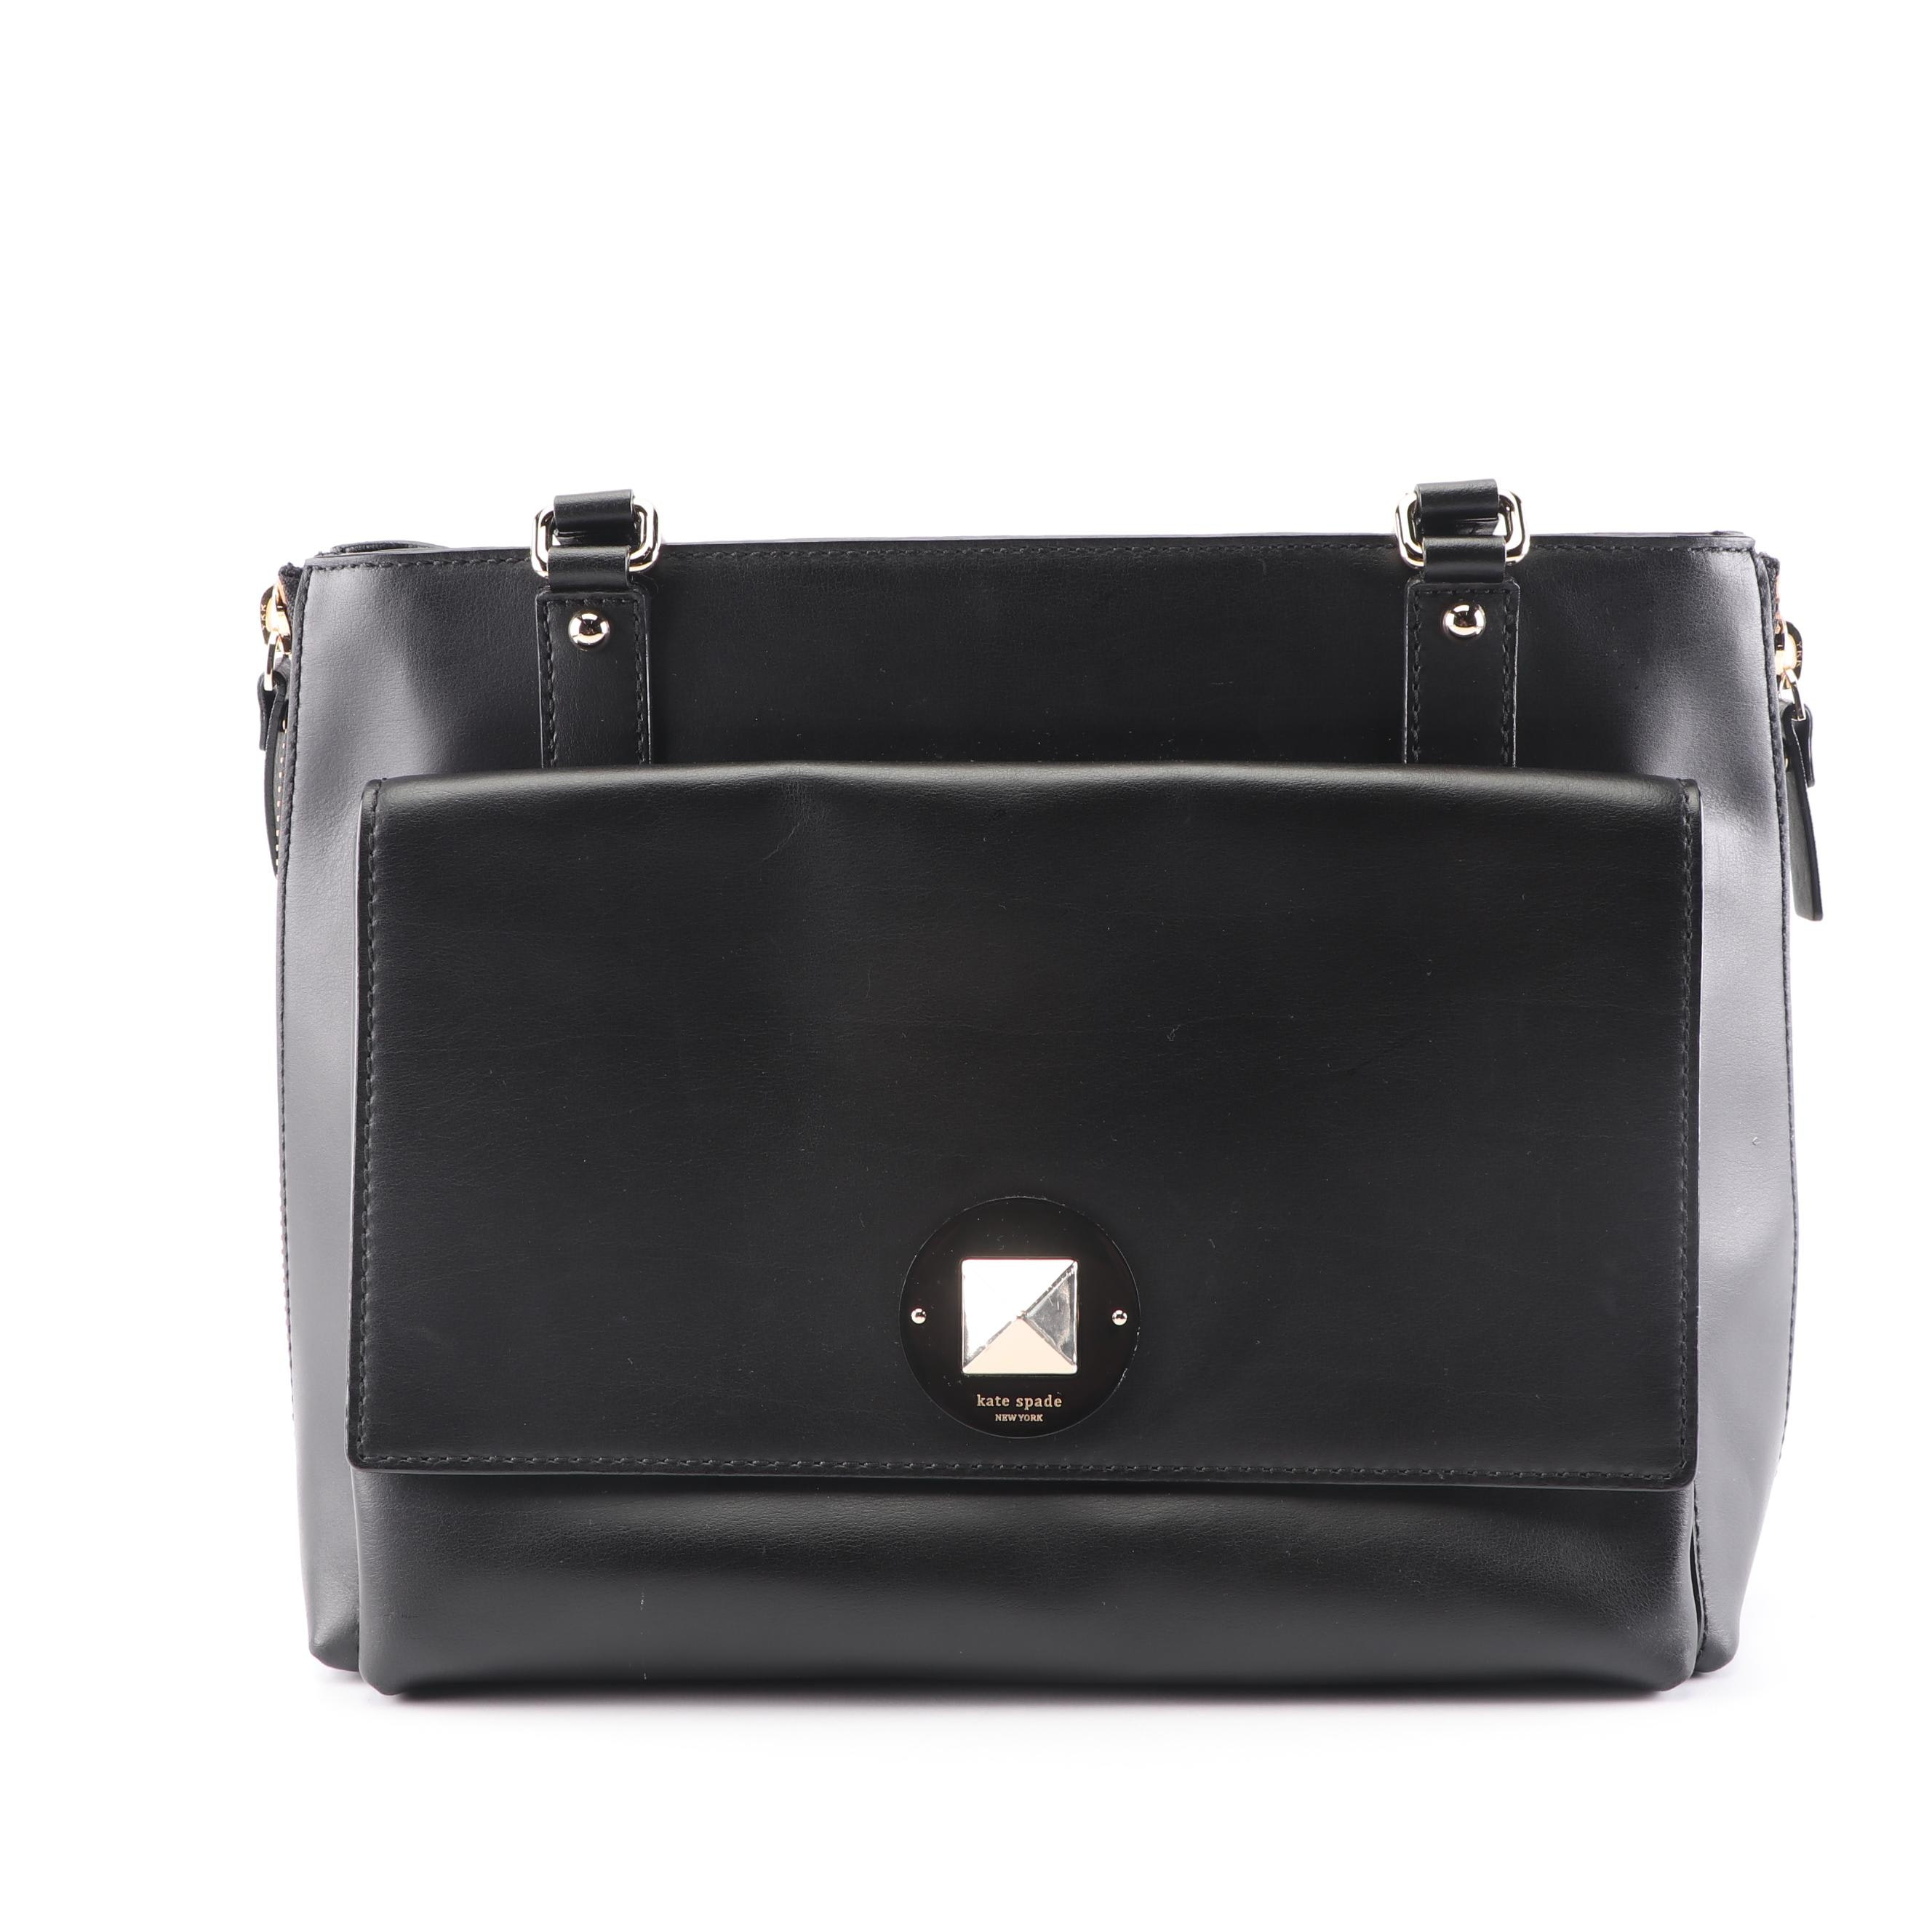 Kate Spade New York Black Leather Shoulder Bag